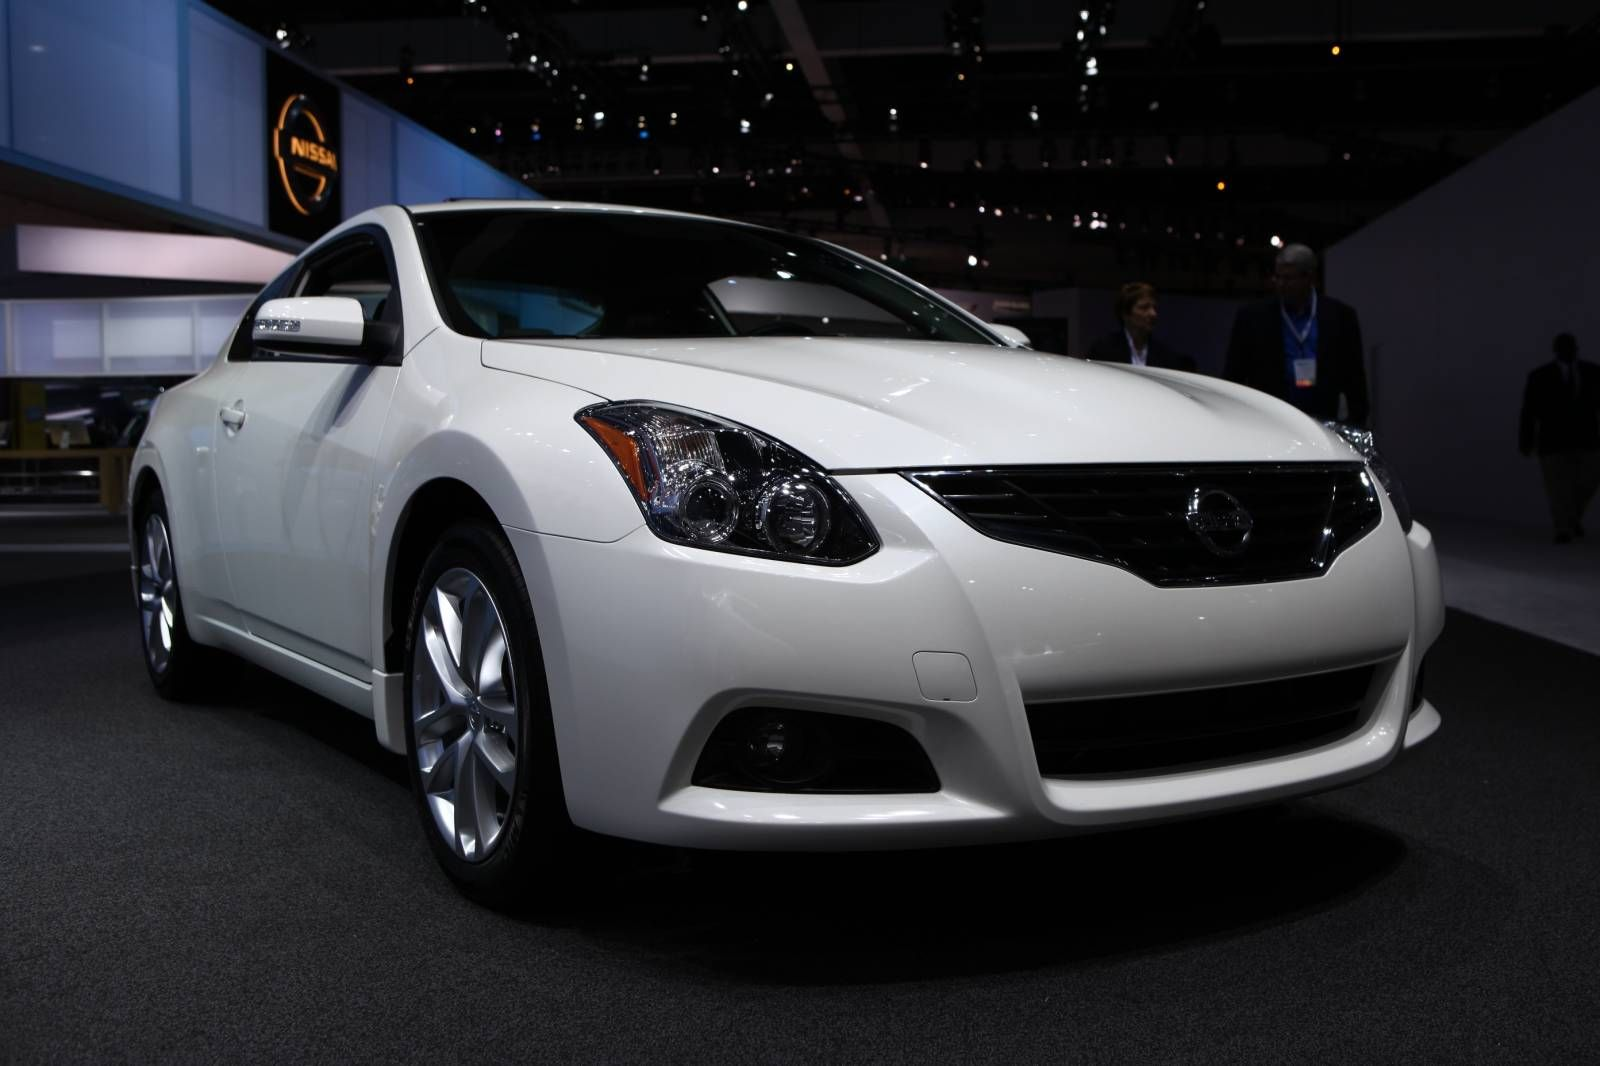 Nissan coupe photo - 7